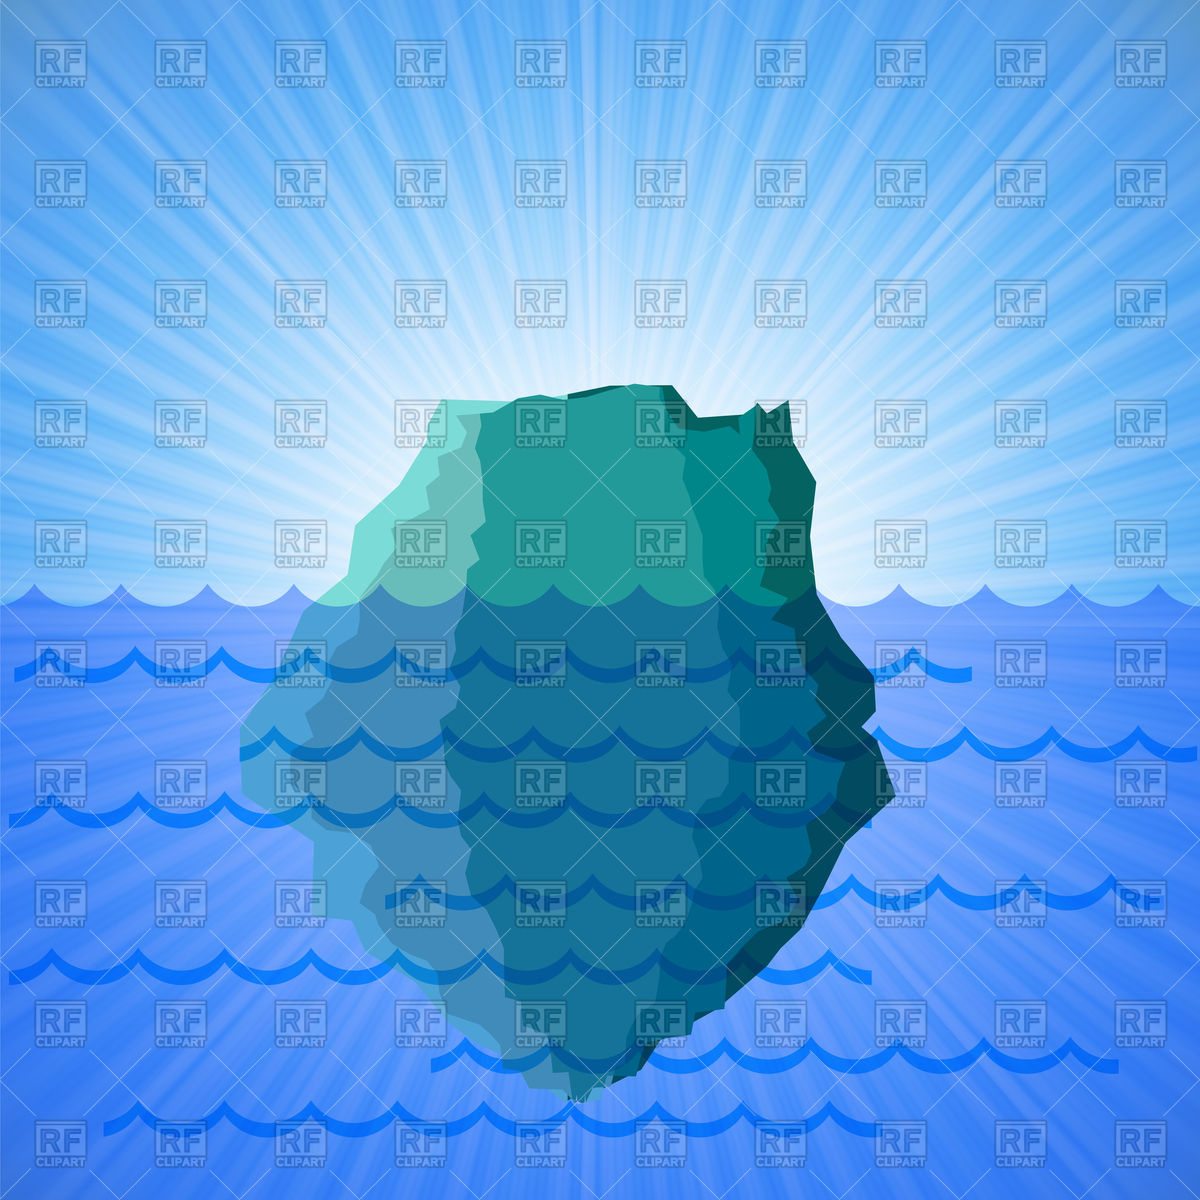 Big iceberg on blue water background Vector Image #84748.